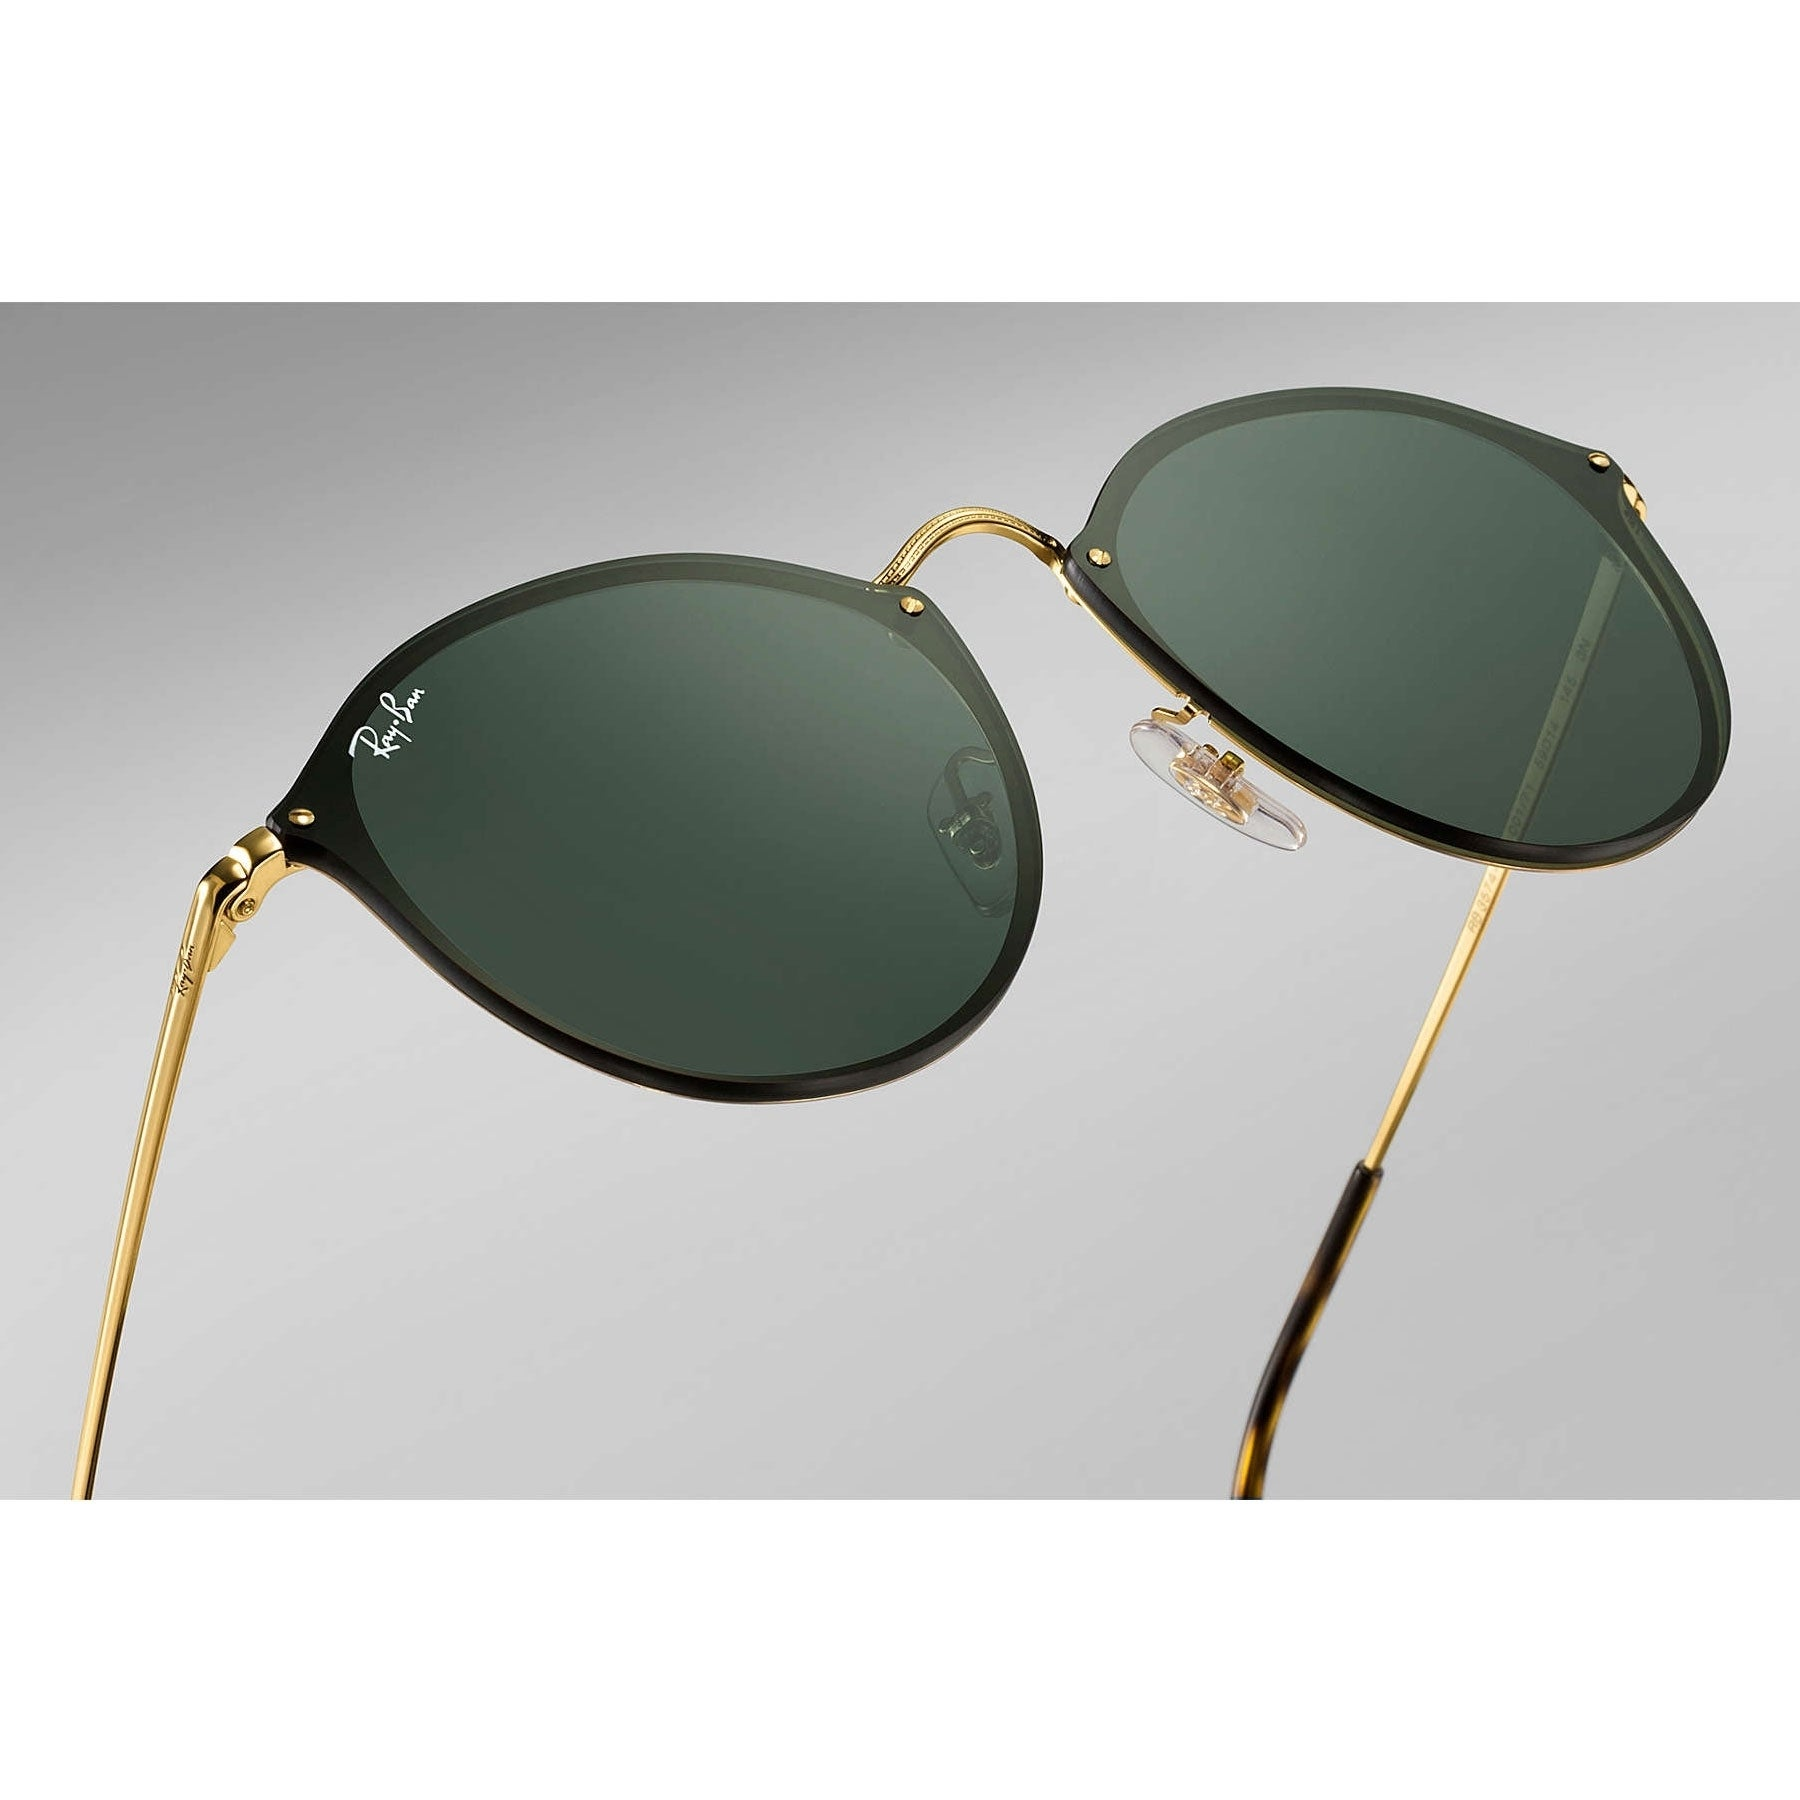 fc721d1bc7c Shop Ray-Ban RB3574N Blaze Round Sunglasses Gold  Green Classic 59mm -  Black - Free Shipping Today - Overstock - 20599784